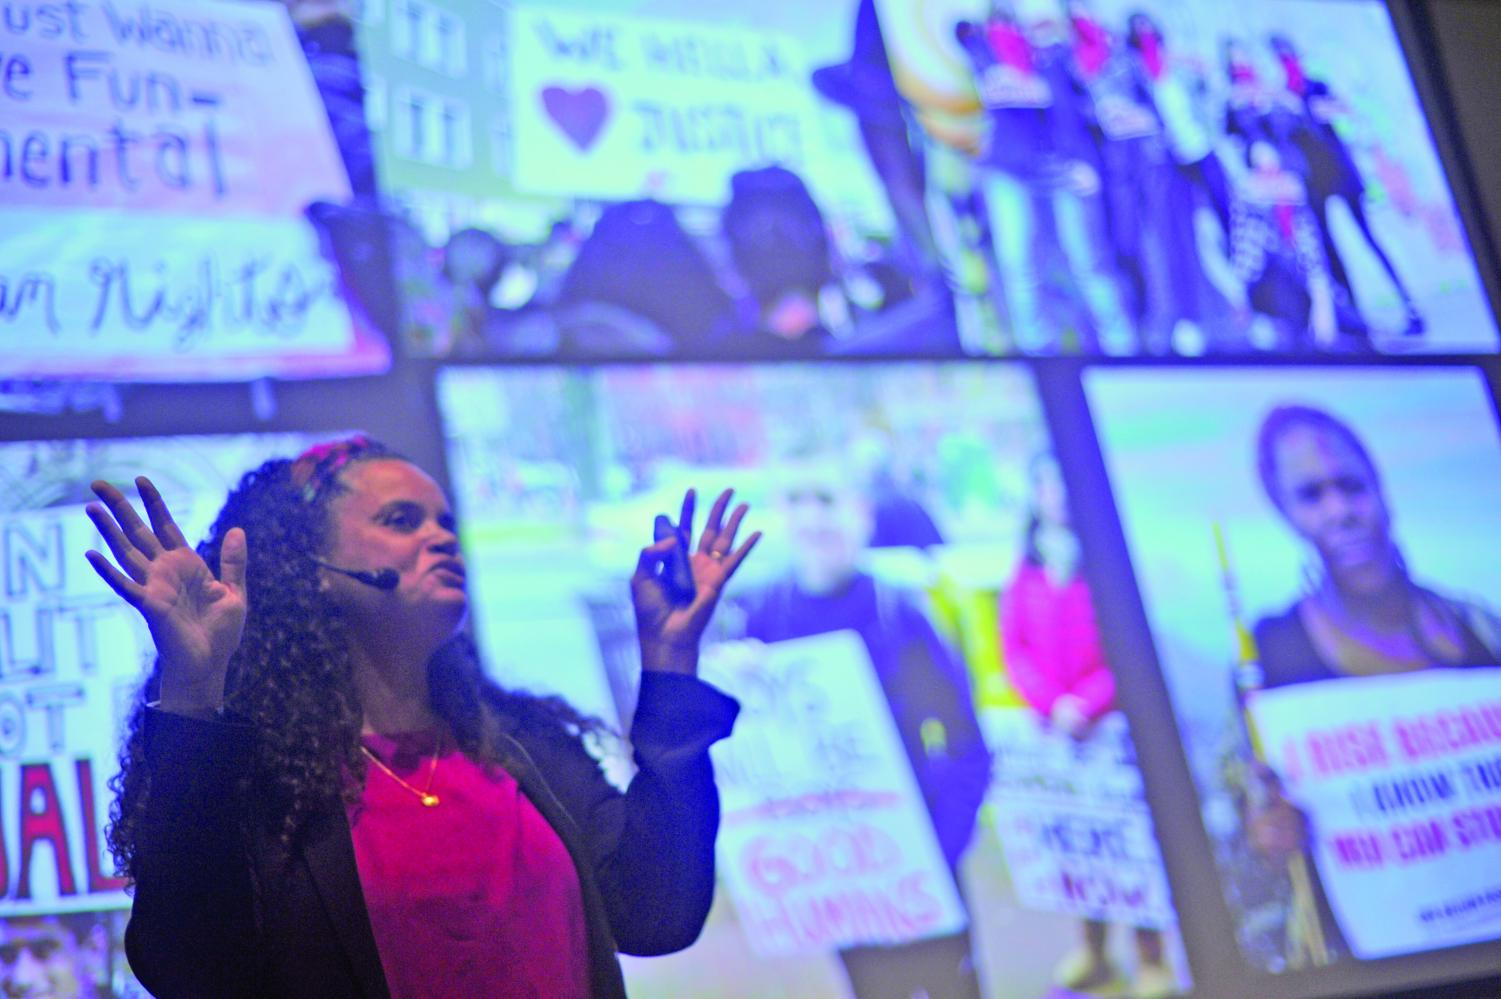 Executive Director of the East Bay Community Law Center Tirien Steinback shares her struggles and triumphs in GE-225 with an audience packed with faculty, staff and students during International Women's Day celebration on campus March 8.